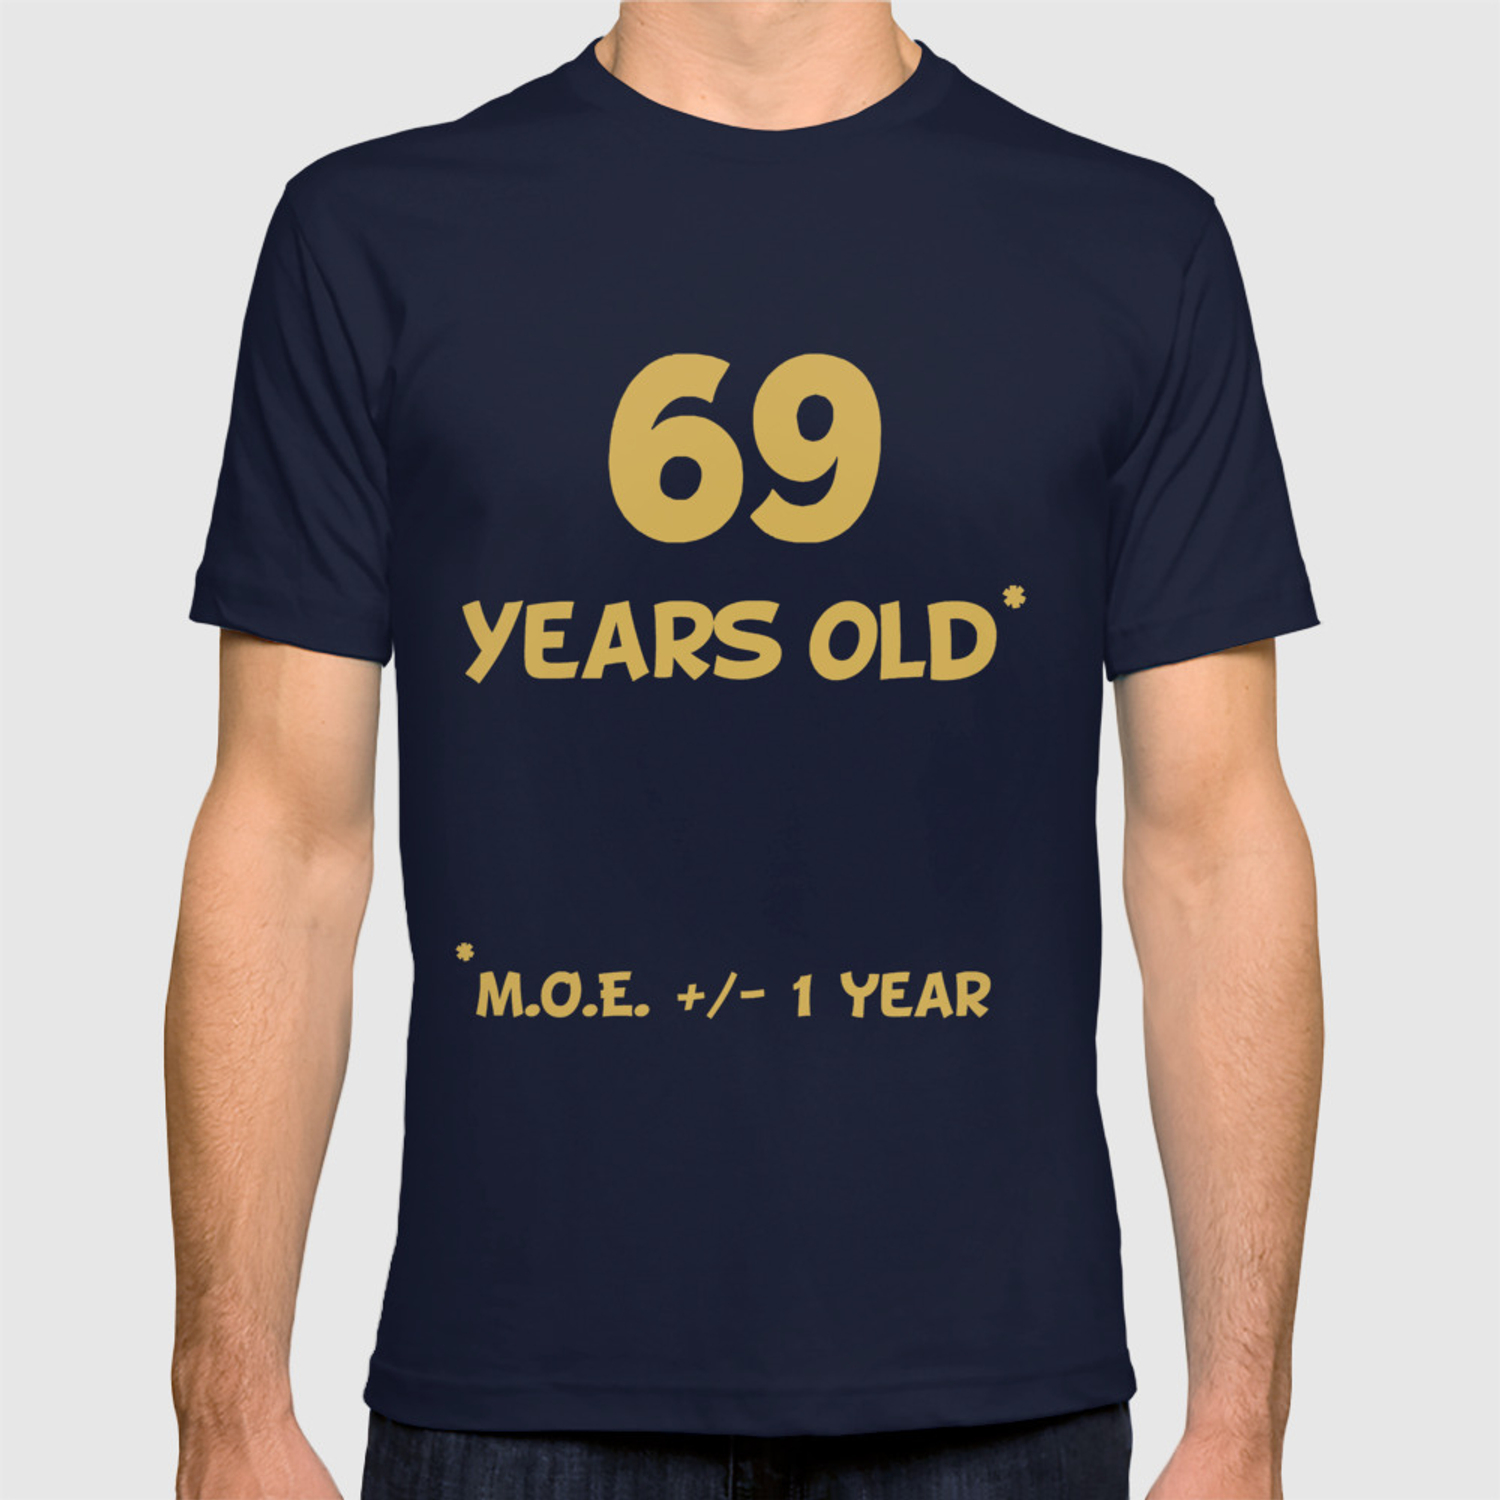 69 Years Old Plus Or Minus 1 Year Funny 70th Birthday T Shirt